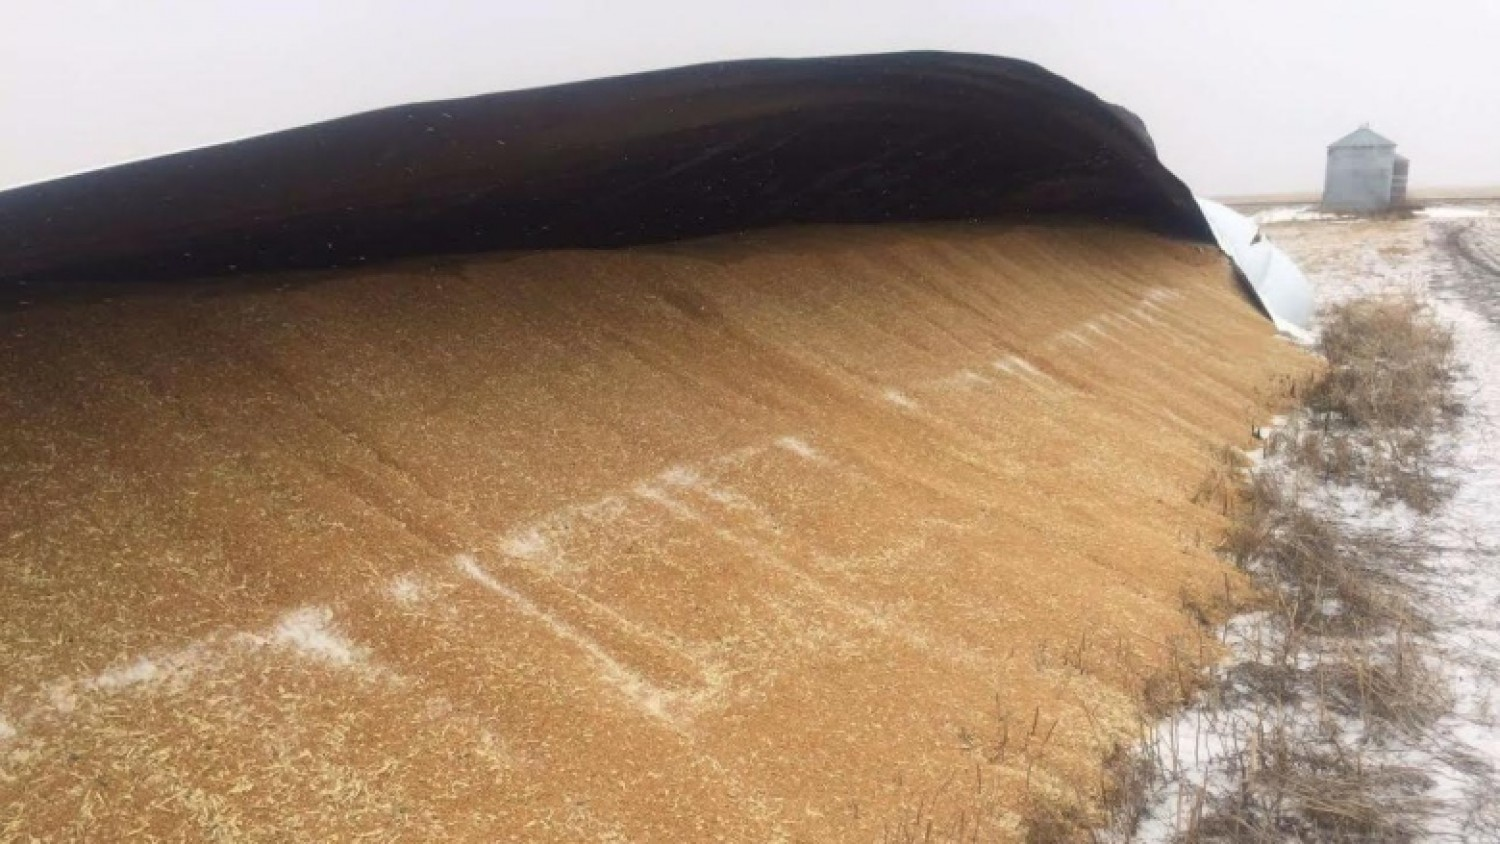 Farmer says slashed grain bags no laughing matter -From CBCNews.ca